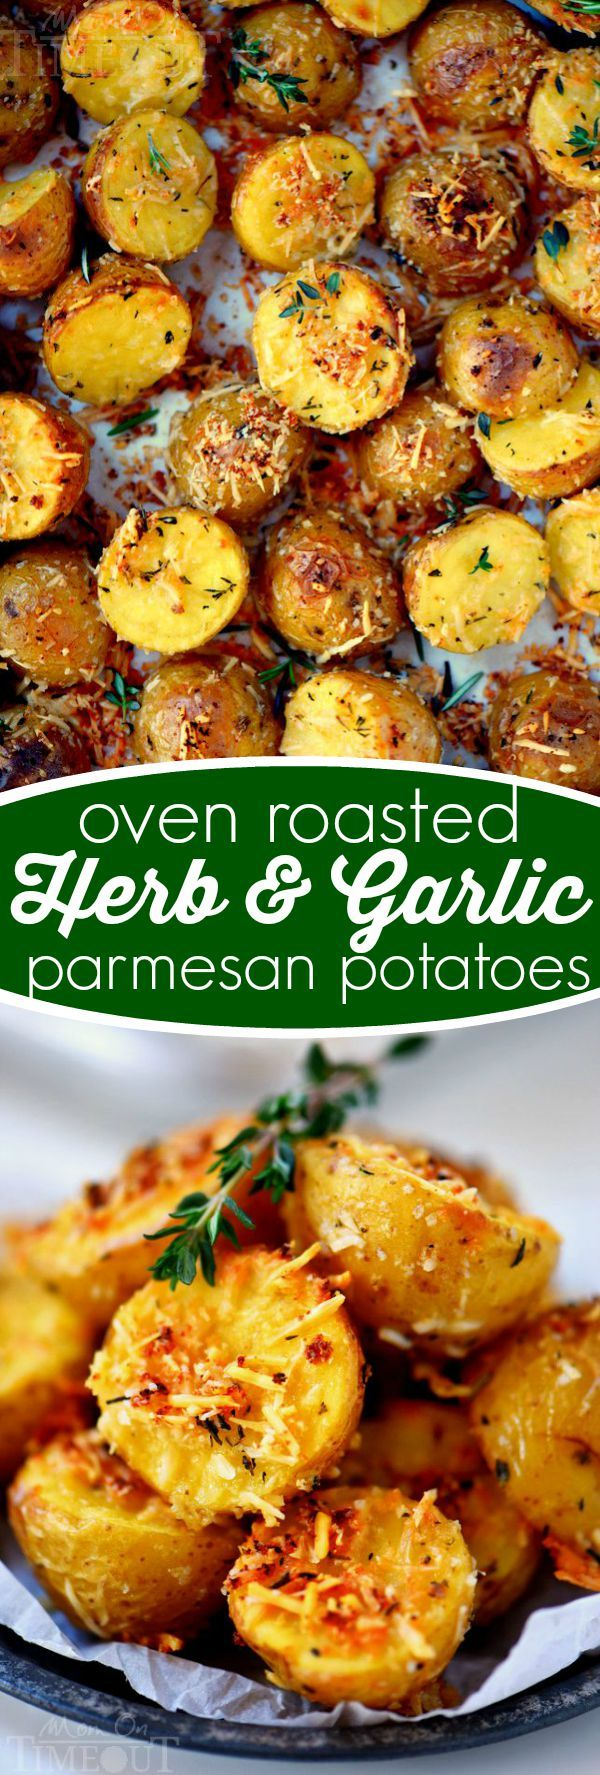 These Oven Roasted Herb and Garlic Parmesan Potatoes are the perfect side dish to whatever you're making for dinner tonight! Perfectly crispy on the outside and light and fluffy on the inside!: